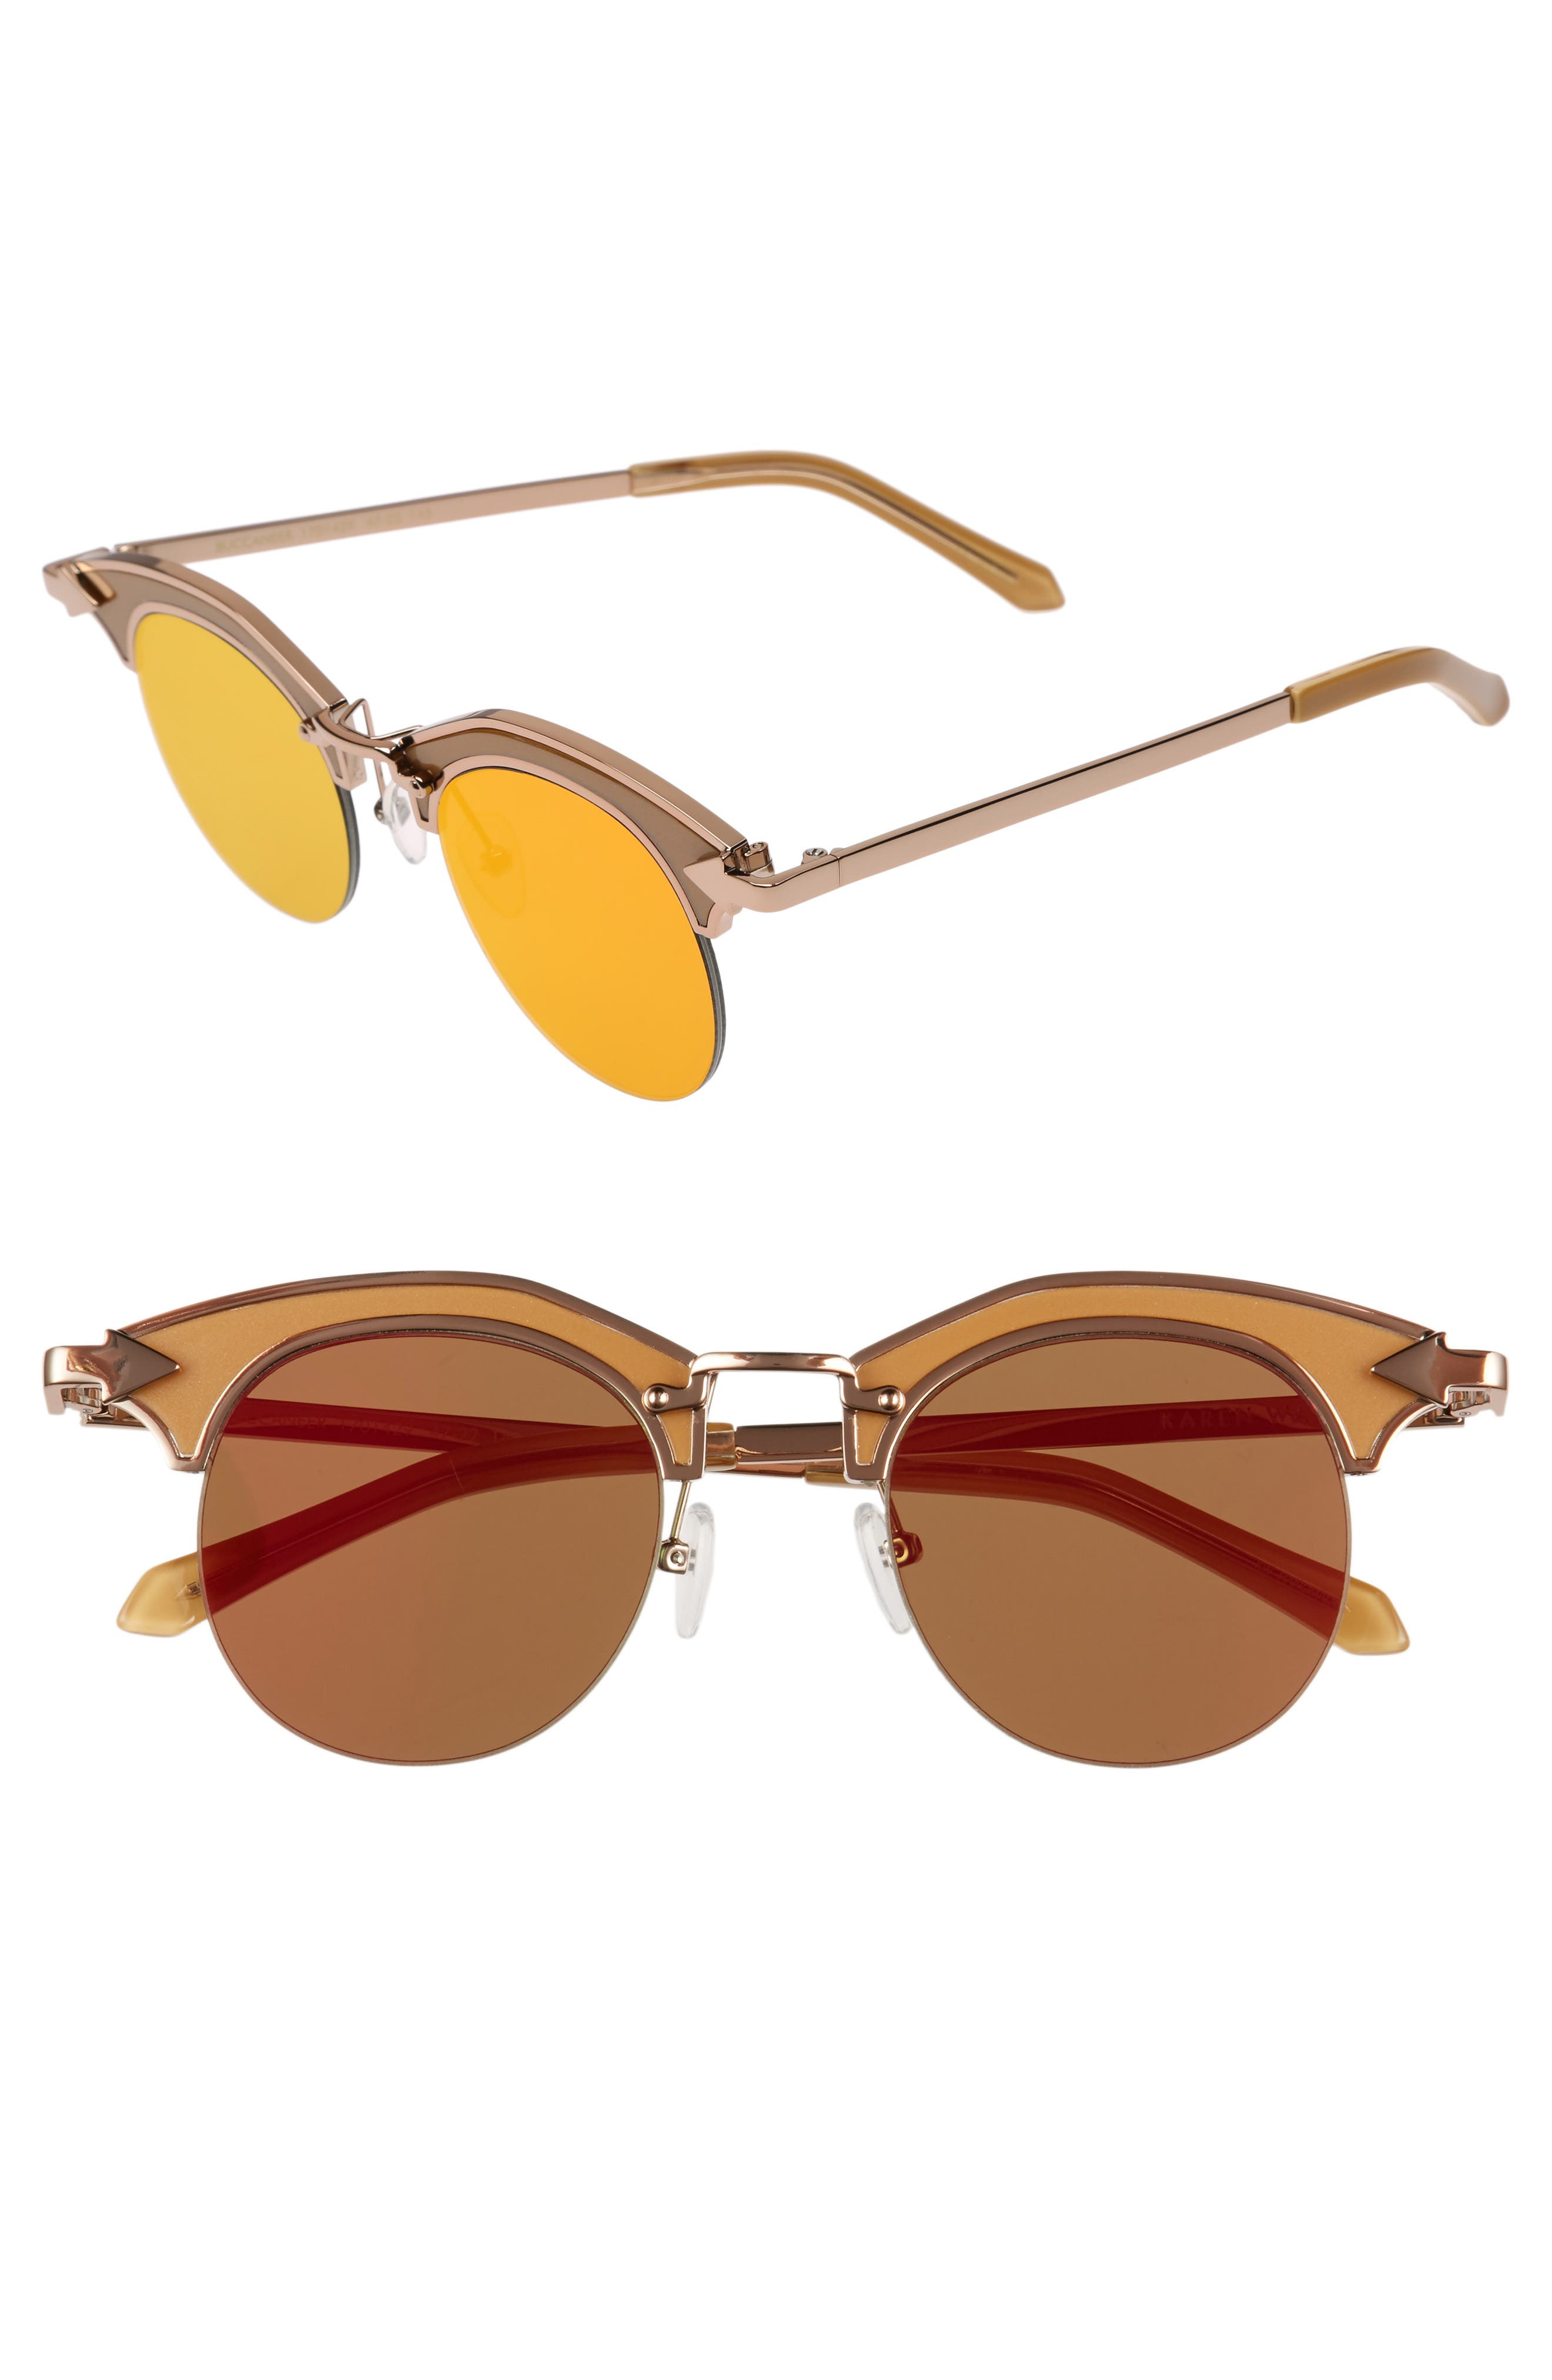 Buccaneer 47mm Round Sunglasses,                             Main thumbnail 1, color,                             Tan